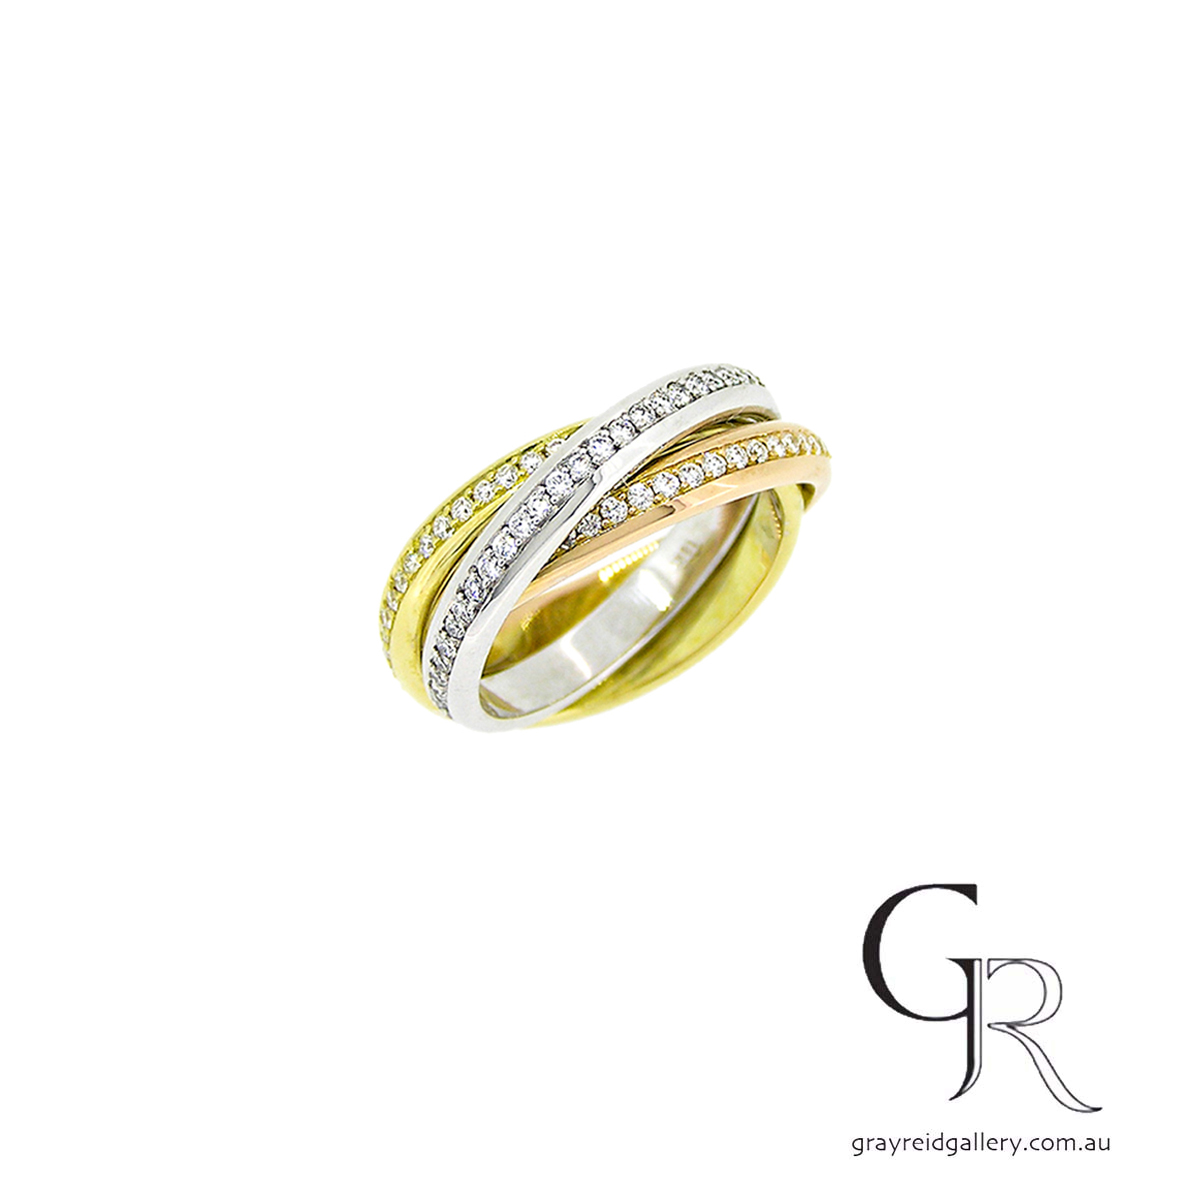 Diamond Russian Wedding Rings Melbourne Gray Reid Gallery .jpg